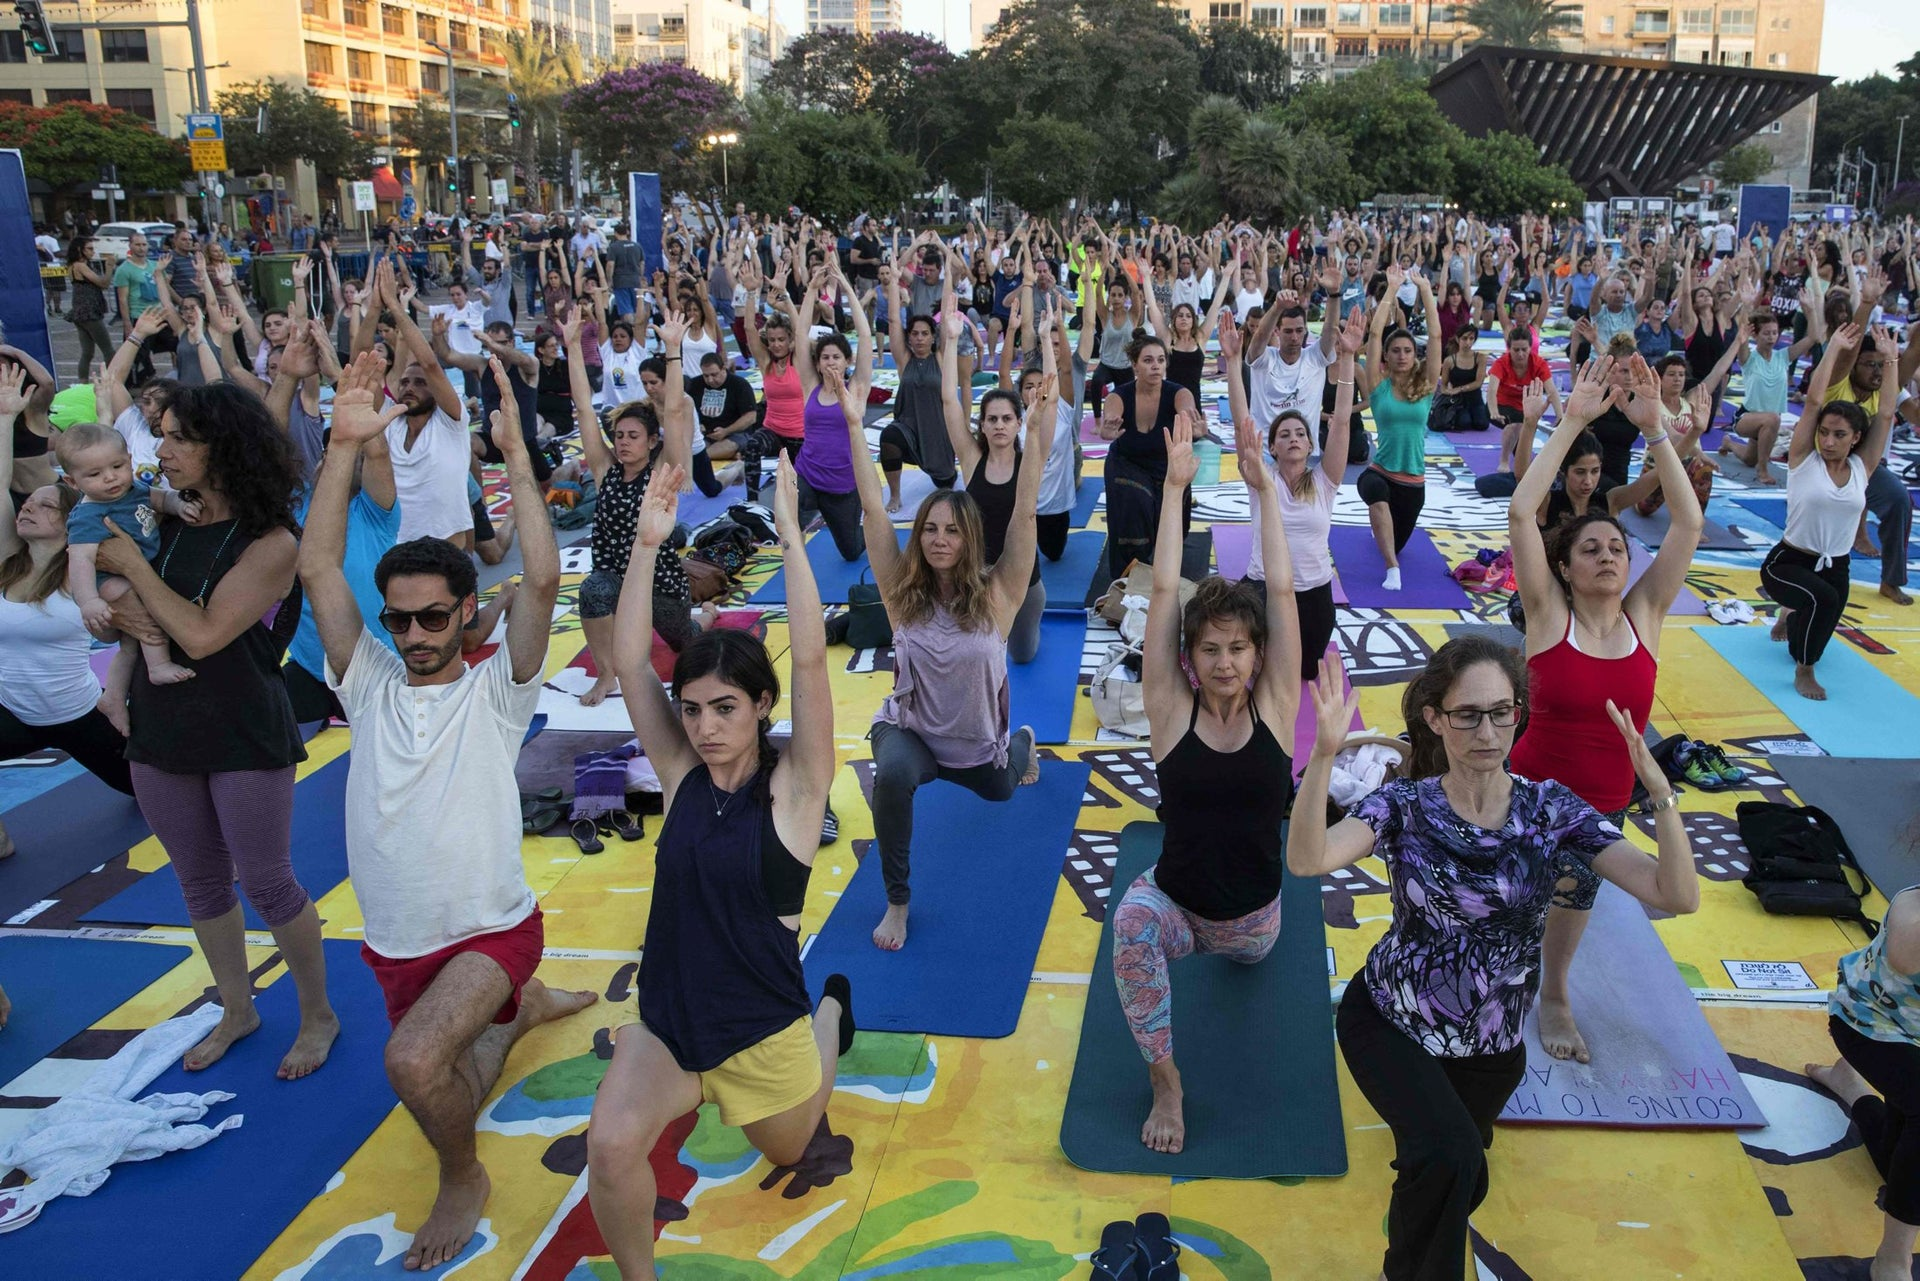 Hundreds of people practise yoga on the occasion of the International Yoga Day in the Israeli coastal city of Tel Aviv on June 21, 2017.